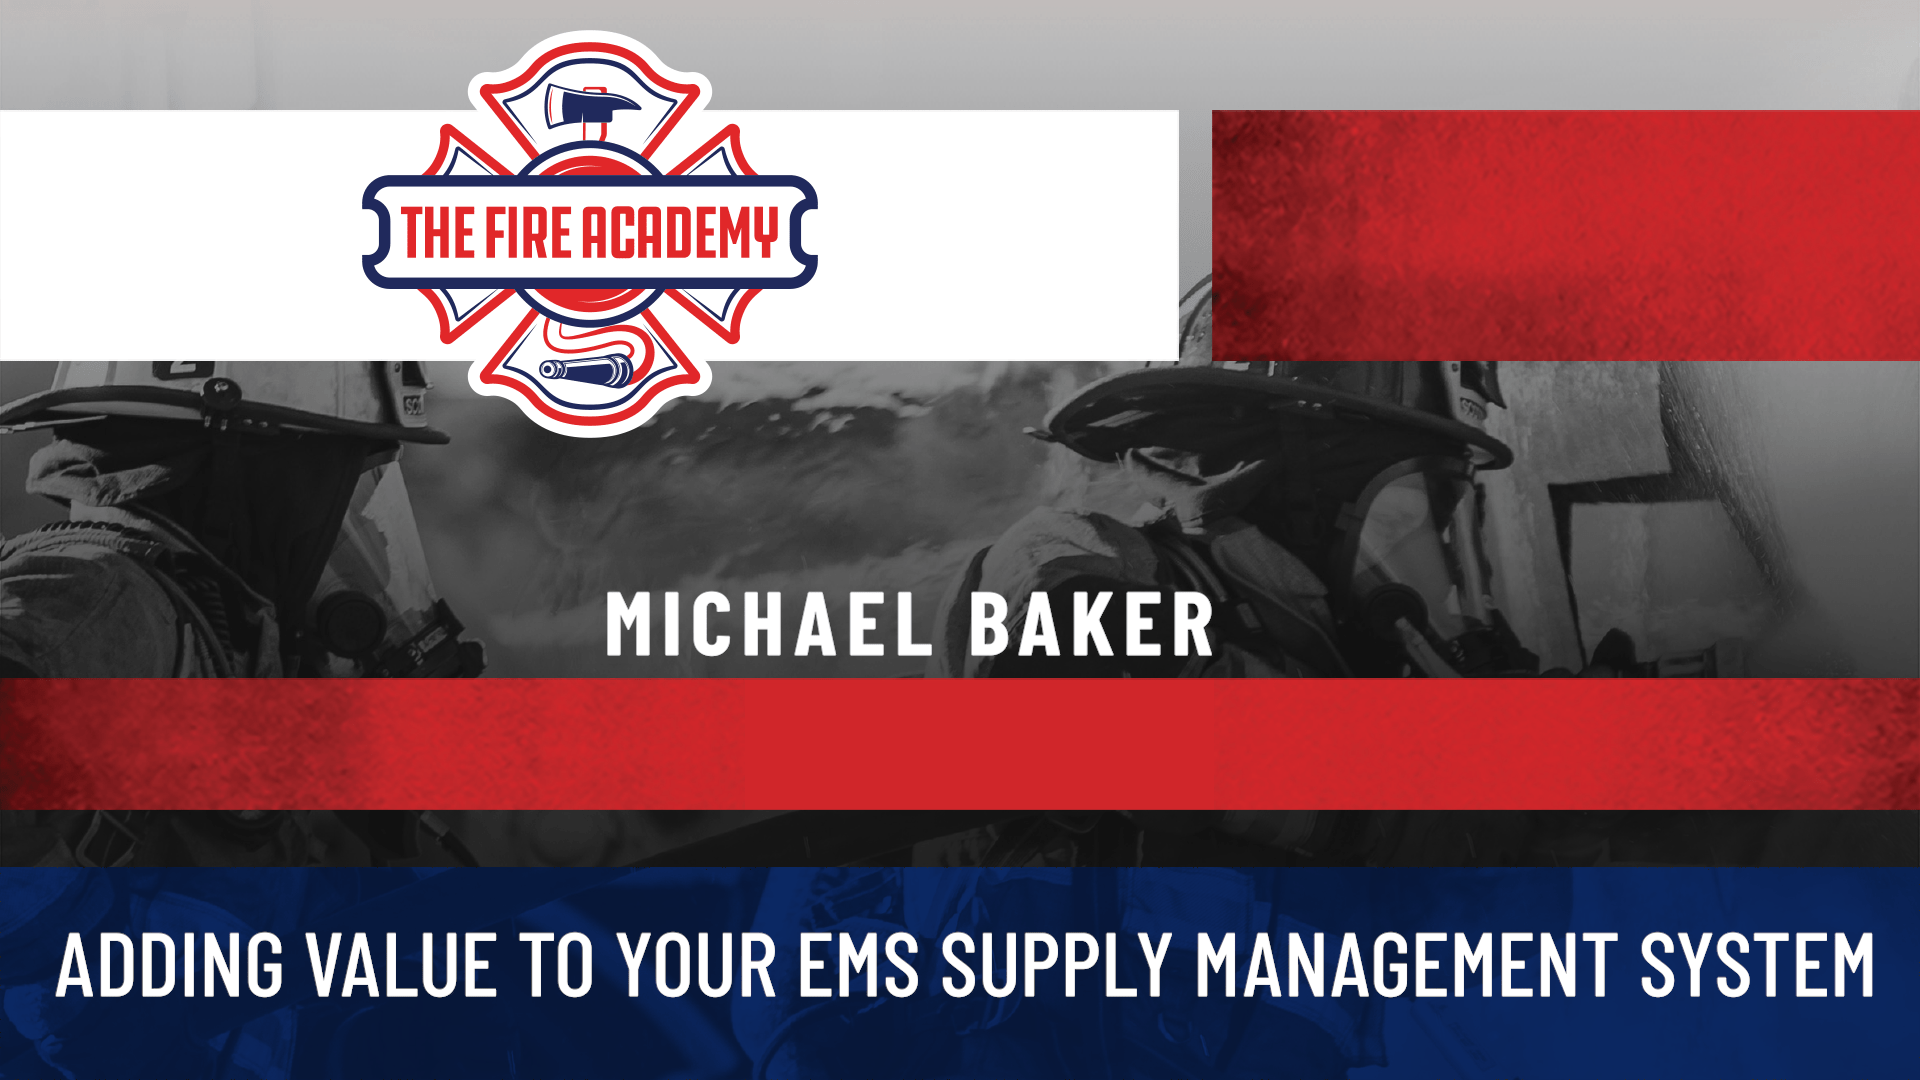 Adding Value to your EMS Supply Management System